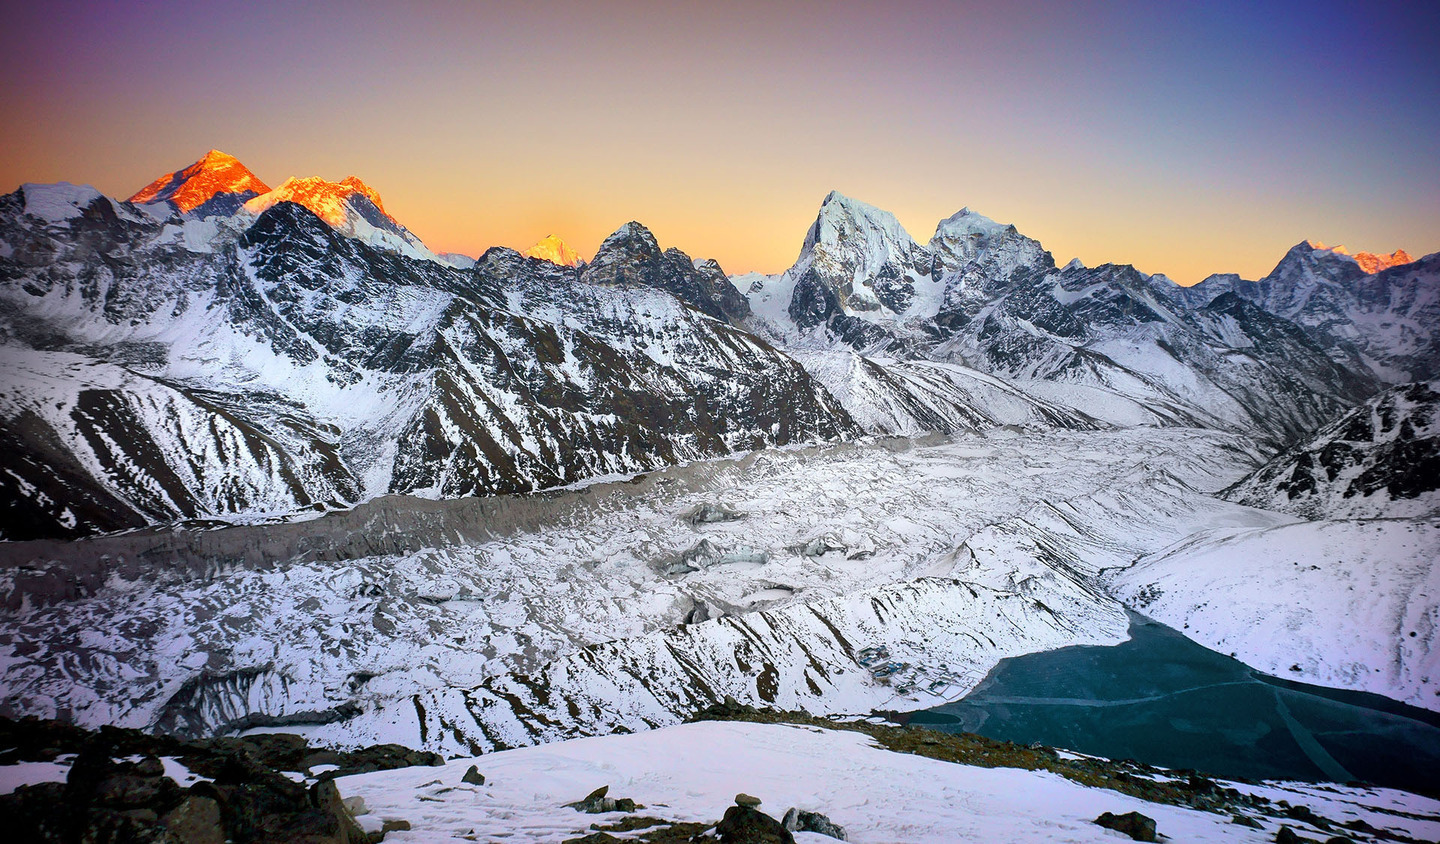 Nepal view of Mt Everest from Gokyo Ri by Joseph Buchman